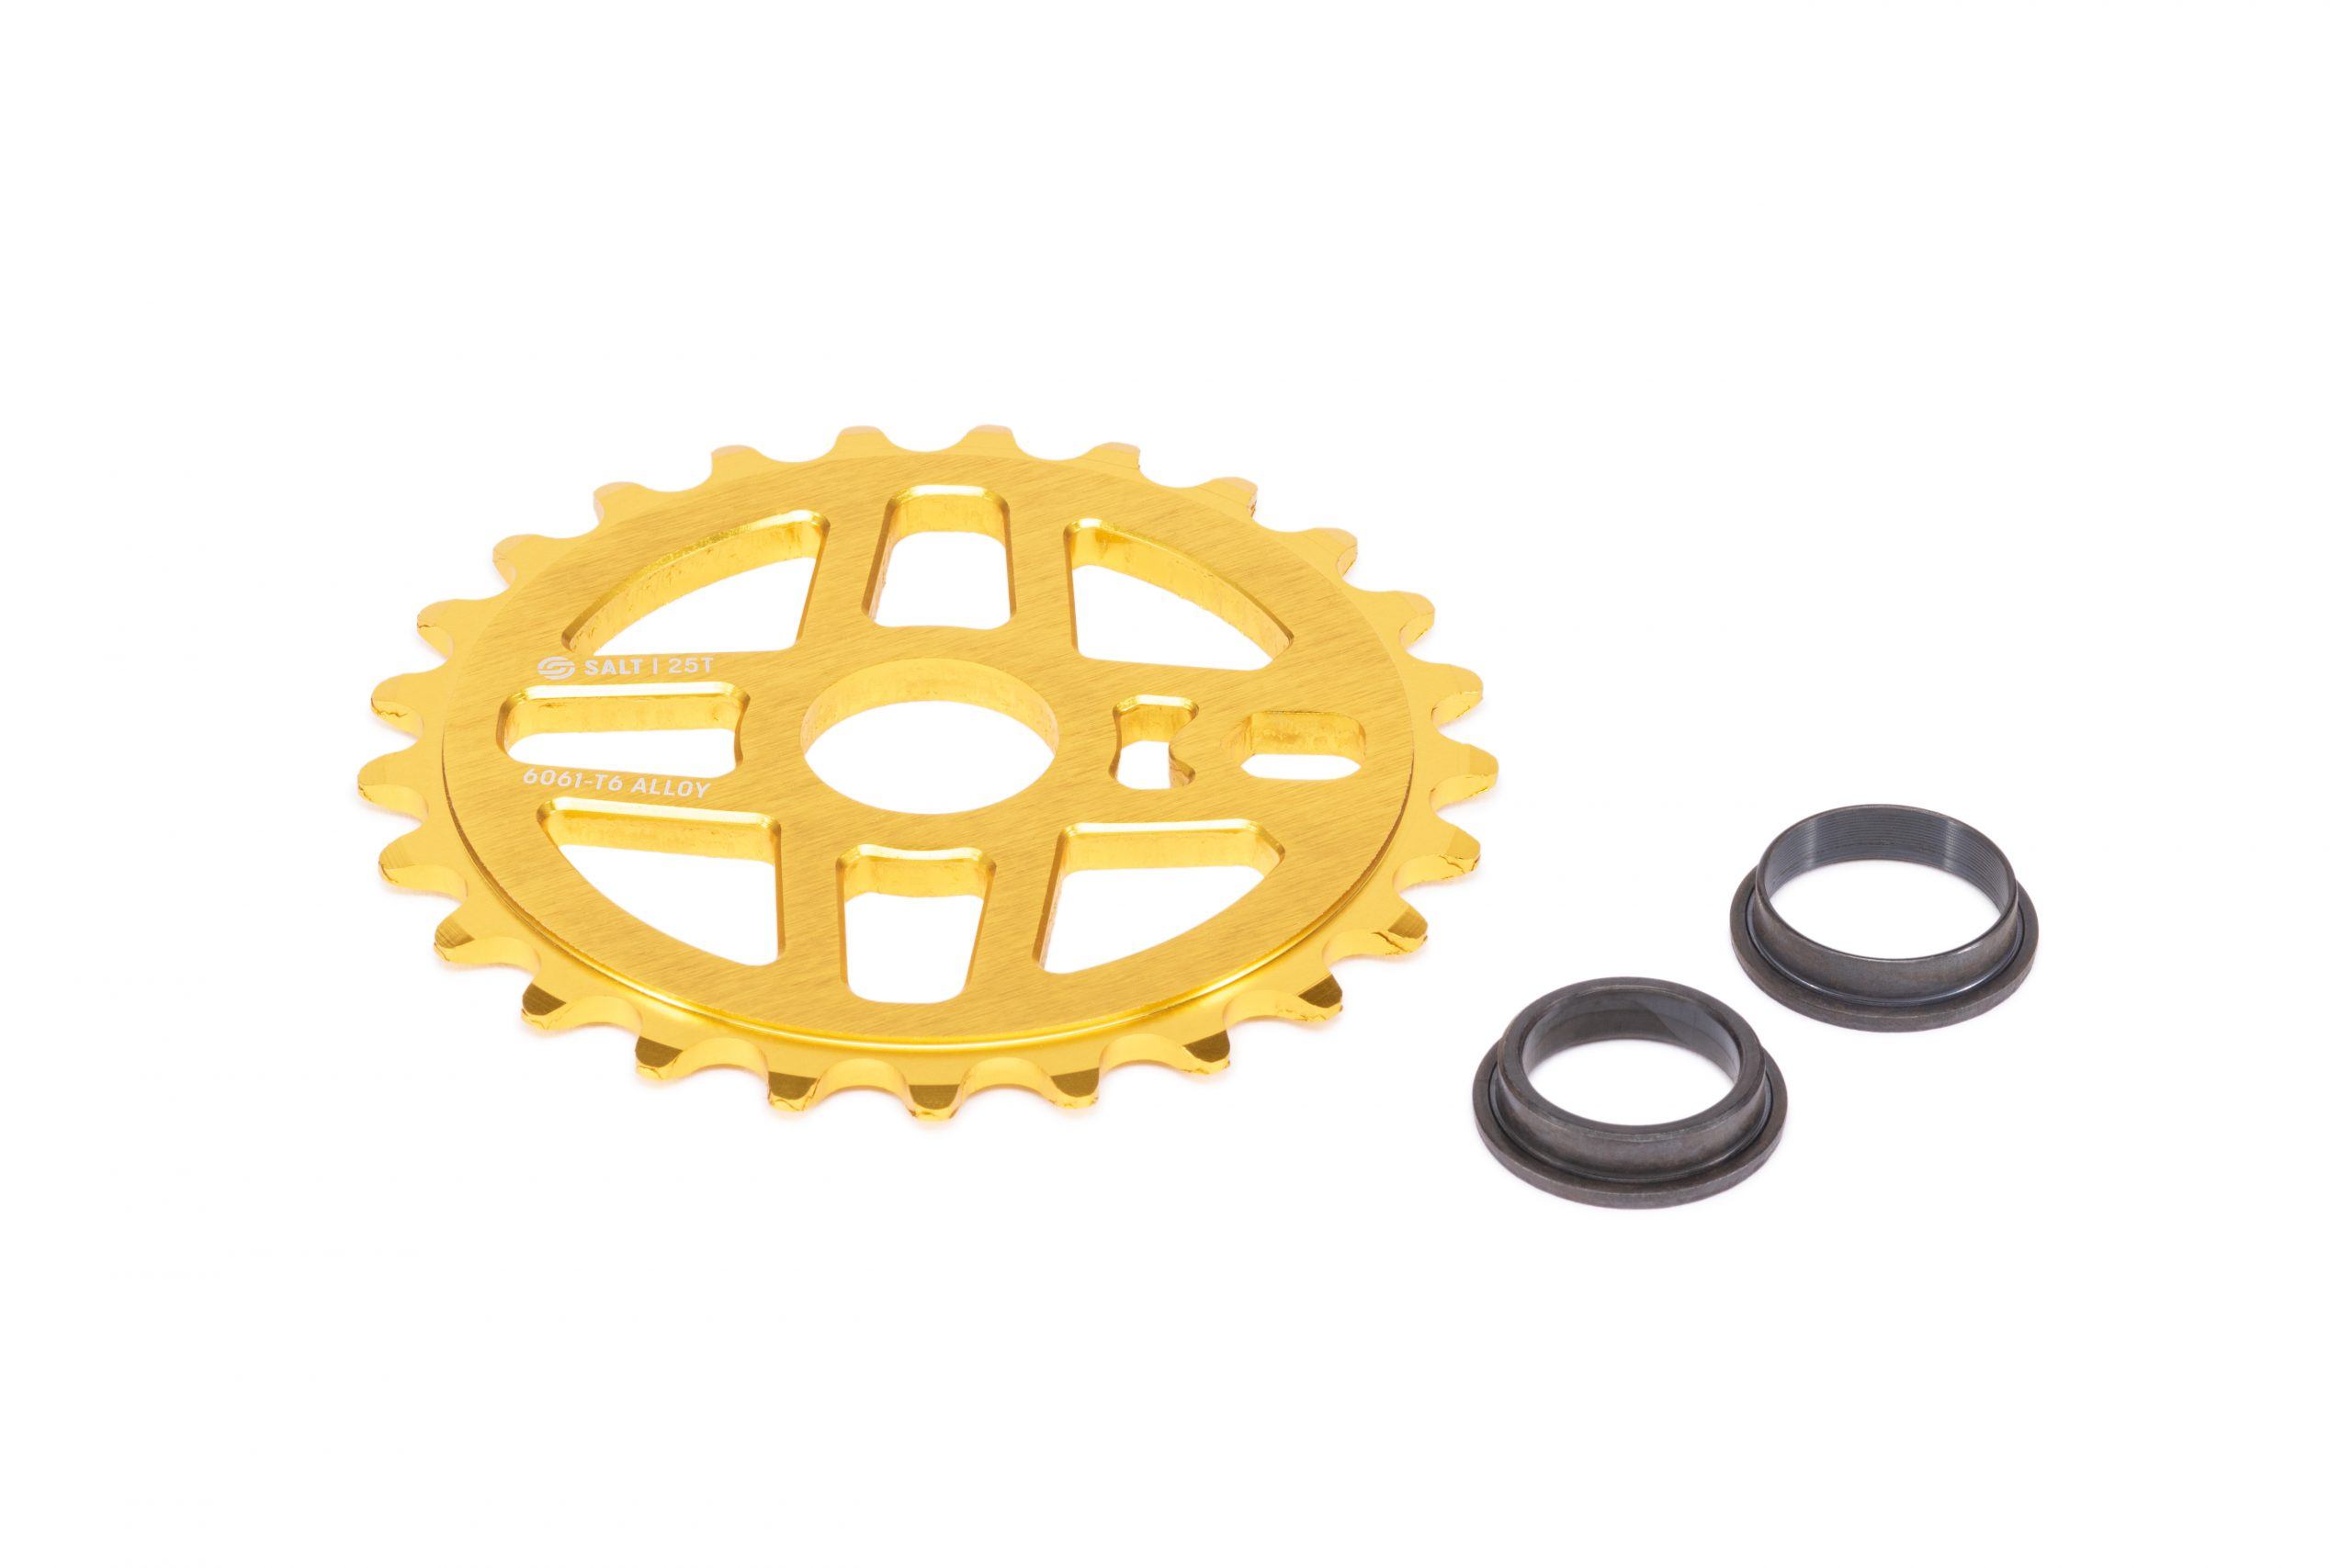 Salt_Pro_sprocket_25t_gold-02